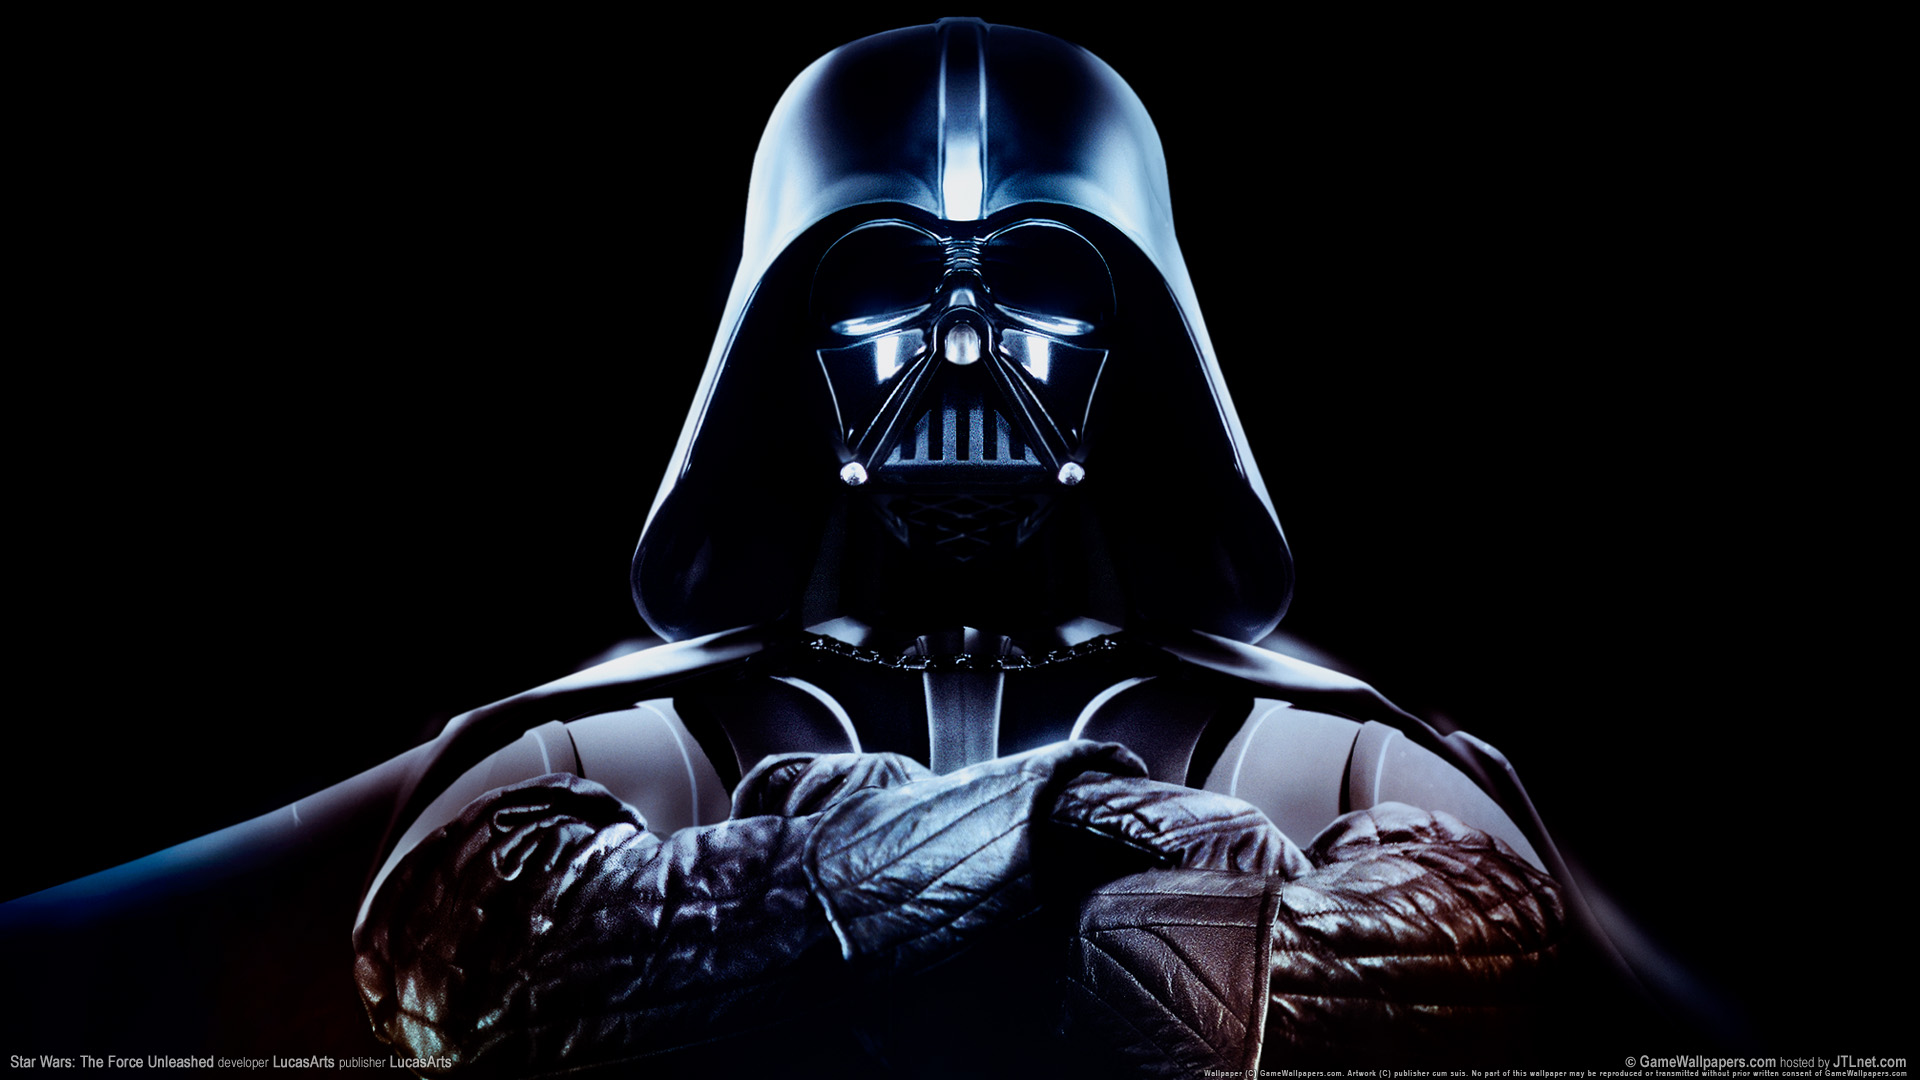 Star Wars Classical Wallpaper- Darth Vader